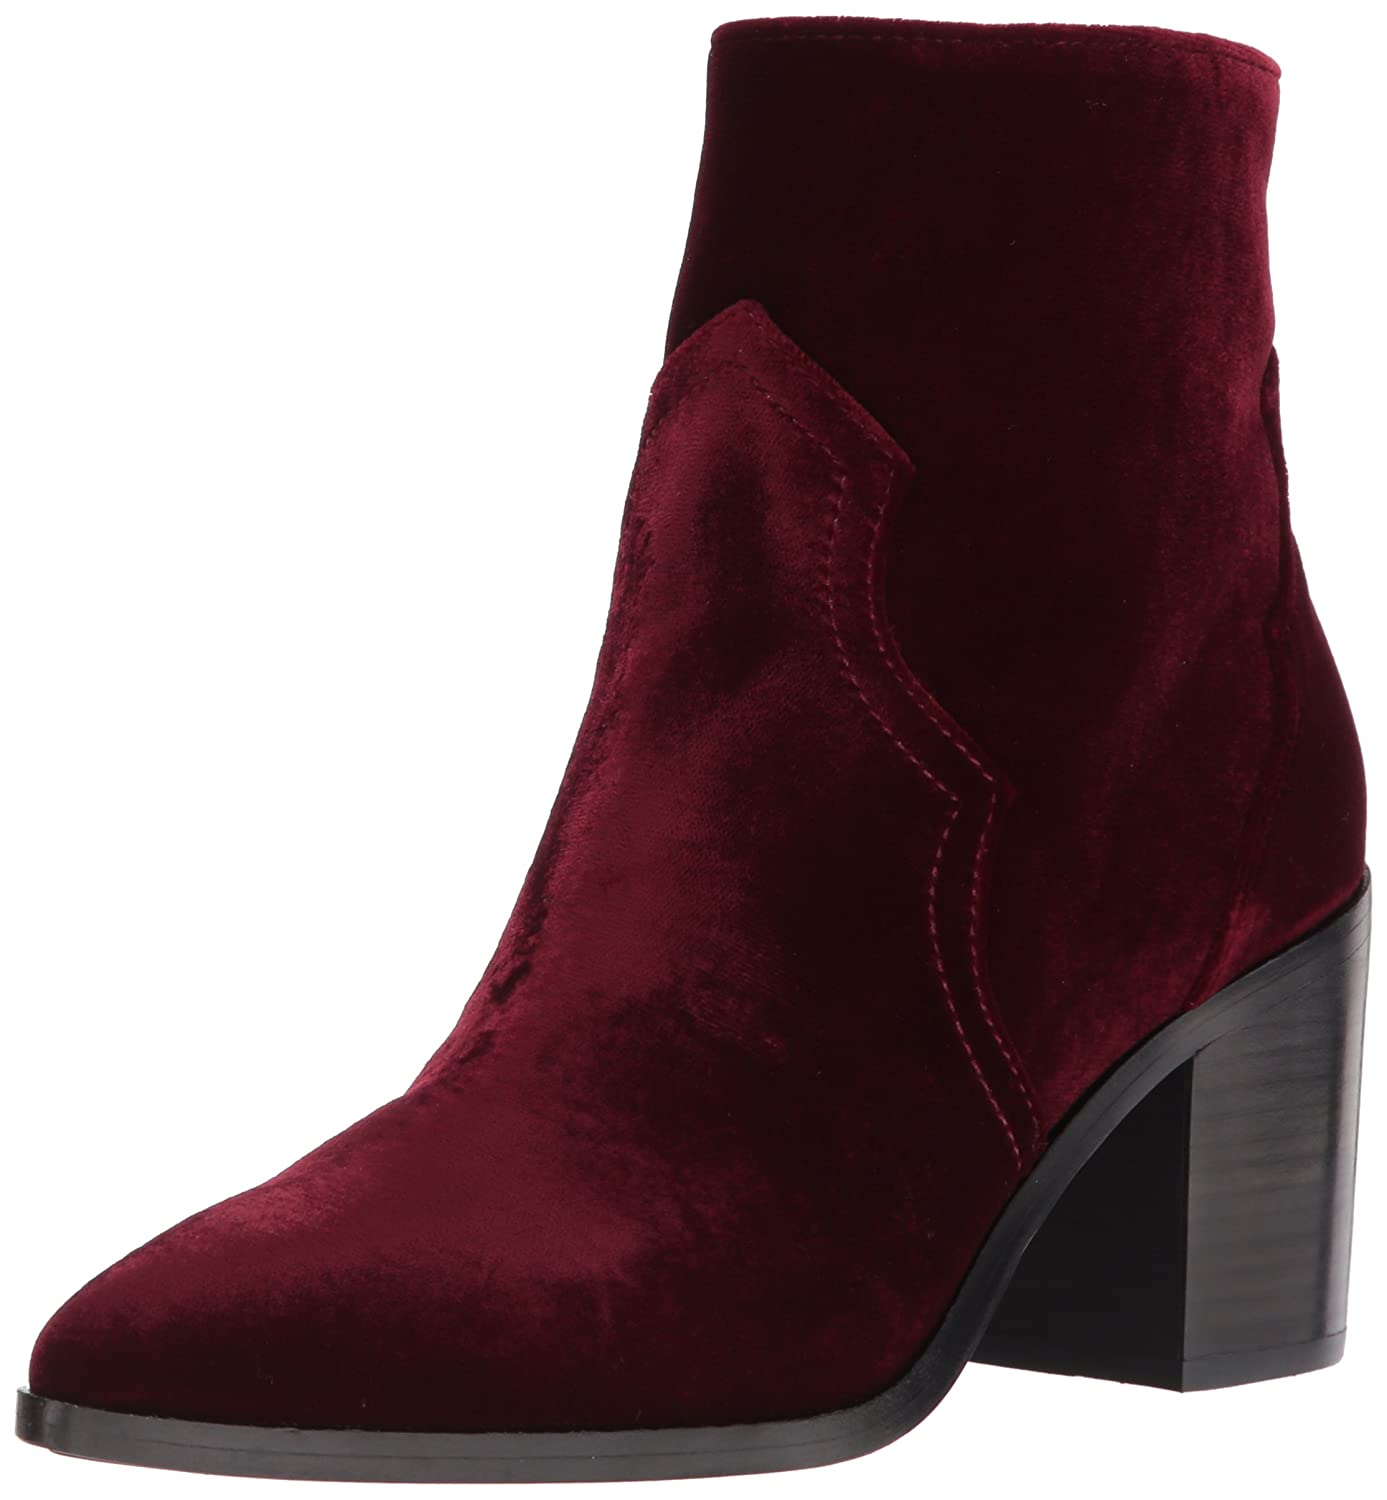 FRYE Women's Flynn Short Inside Zip Ankle Bootie B01N4X6H67 9.5 B(M) US|Wine